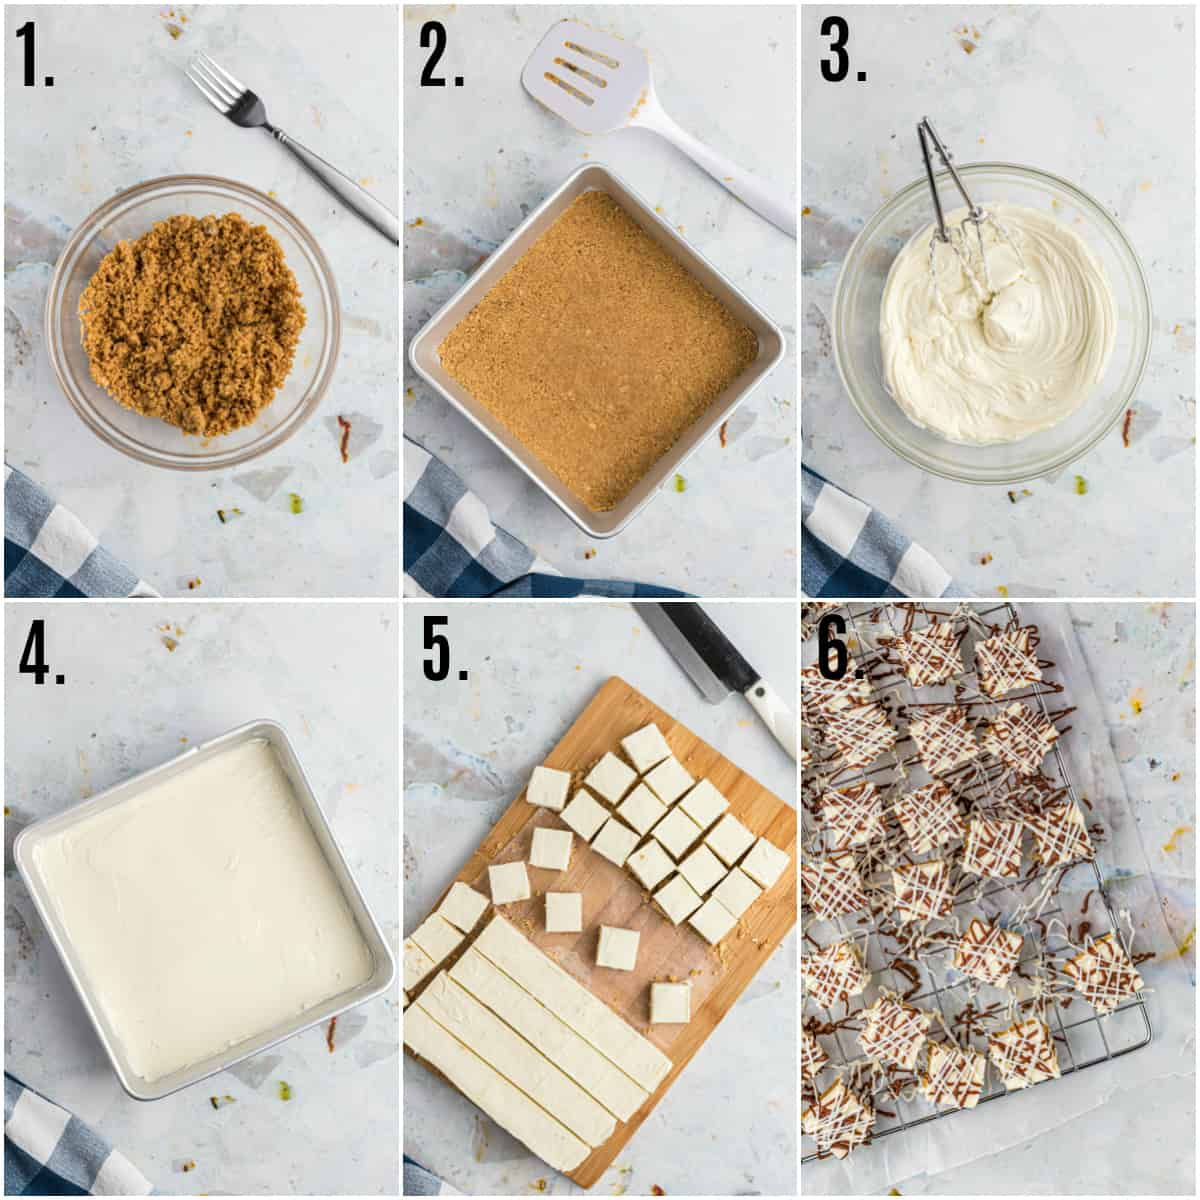 Step by step photos on how to make Cheesecake Bites